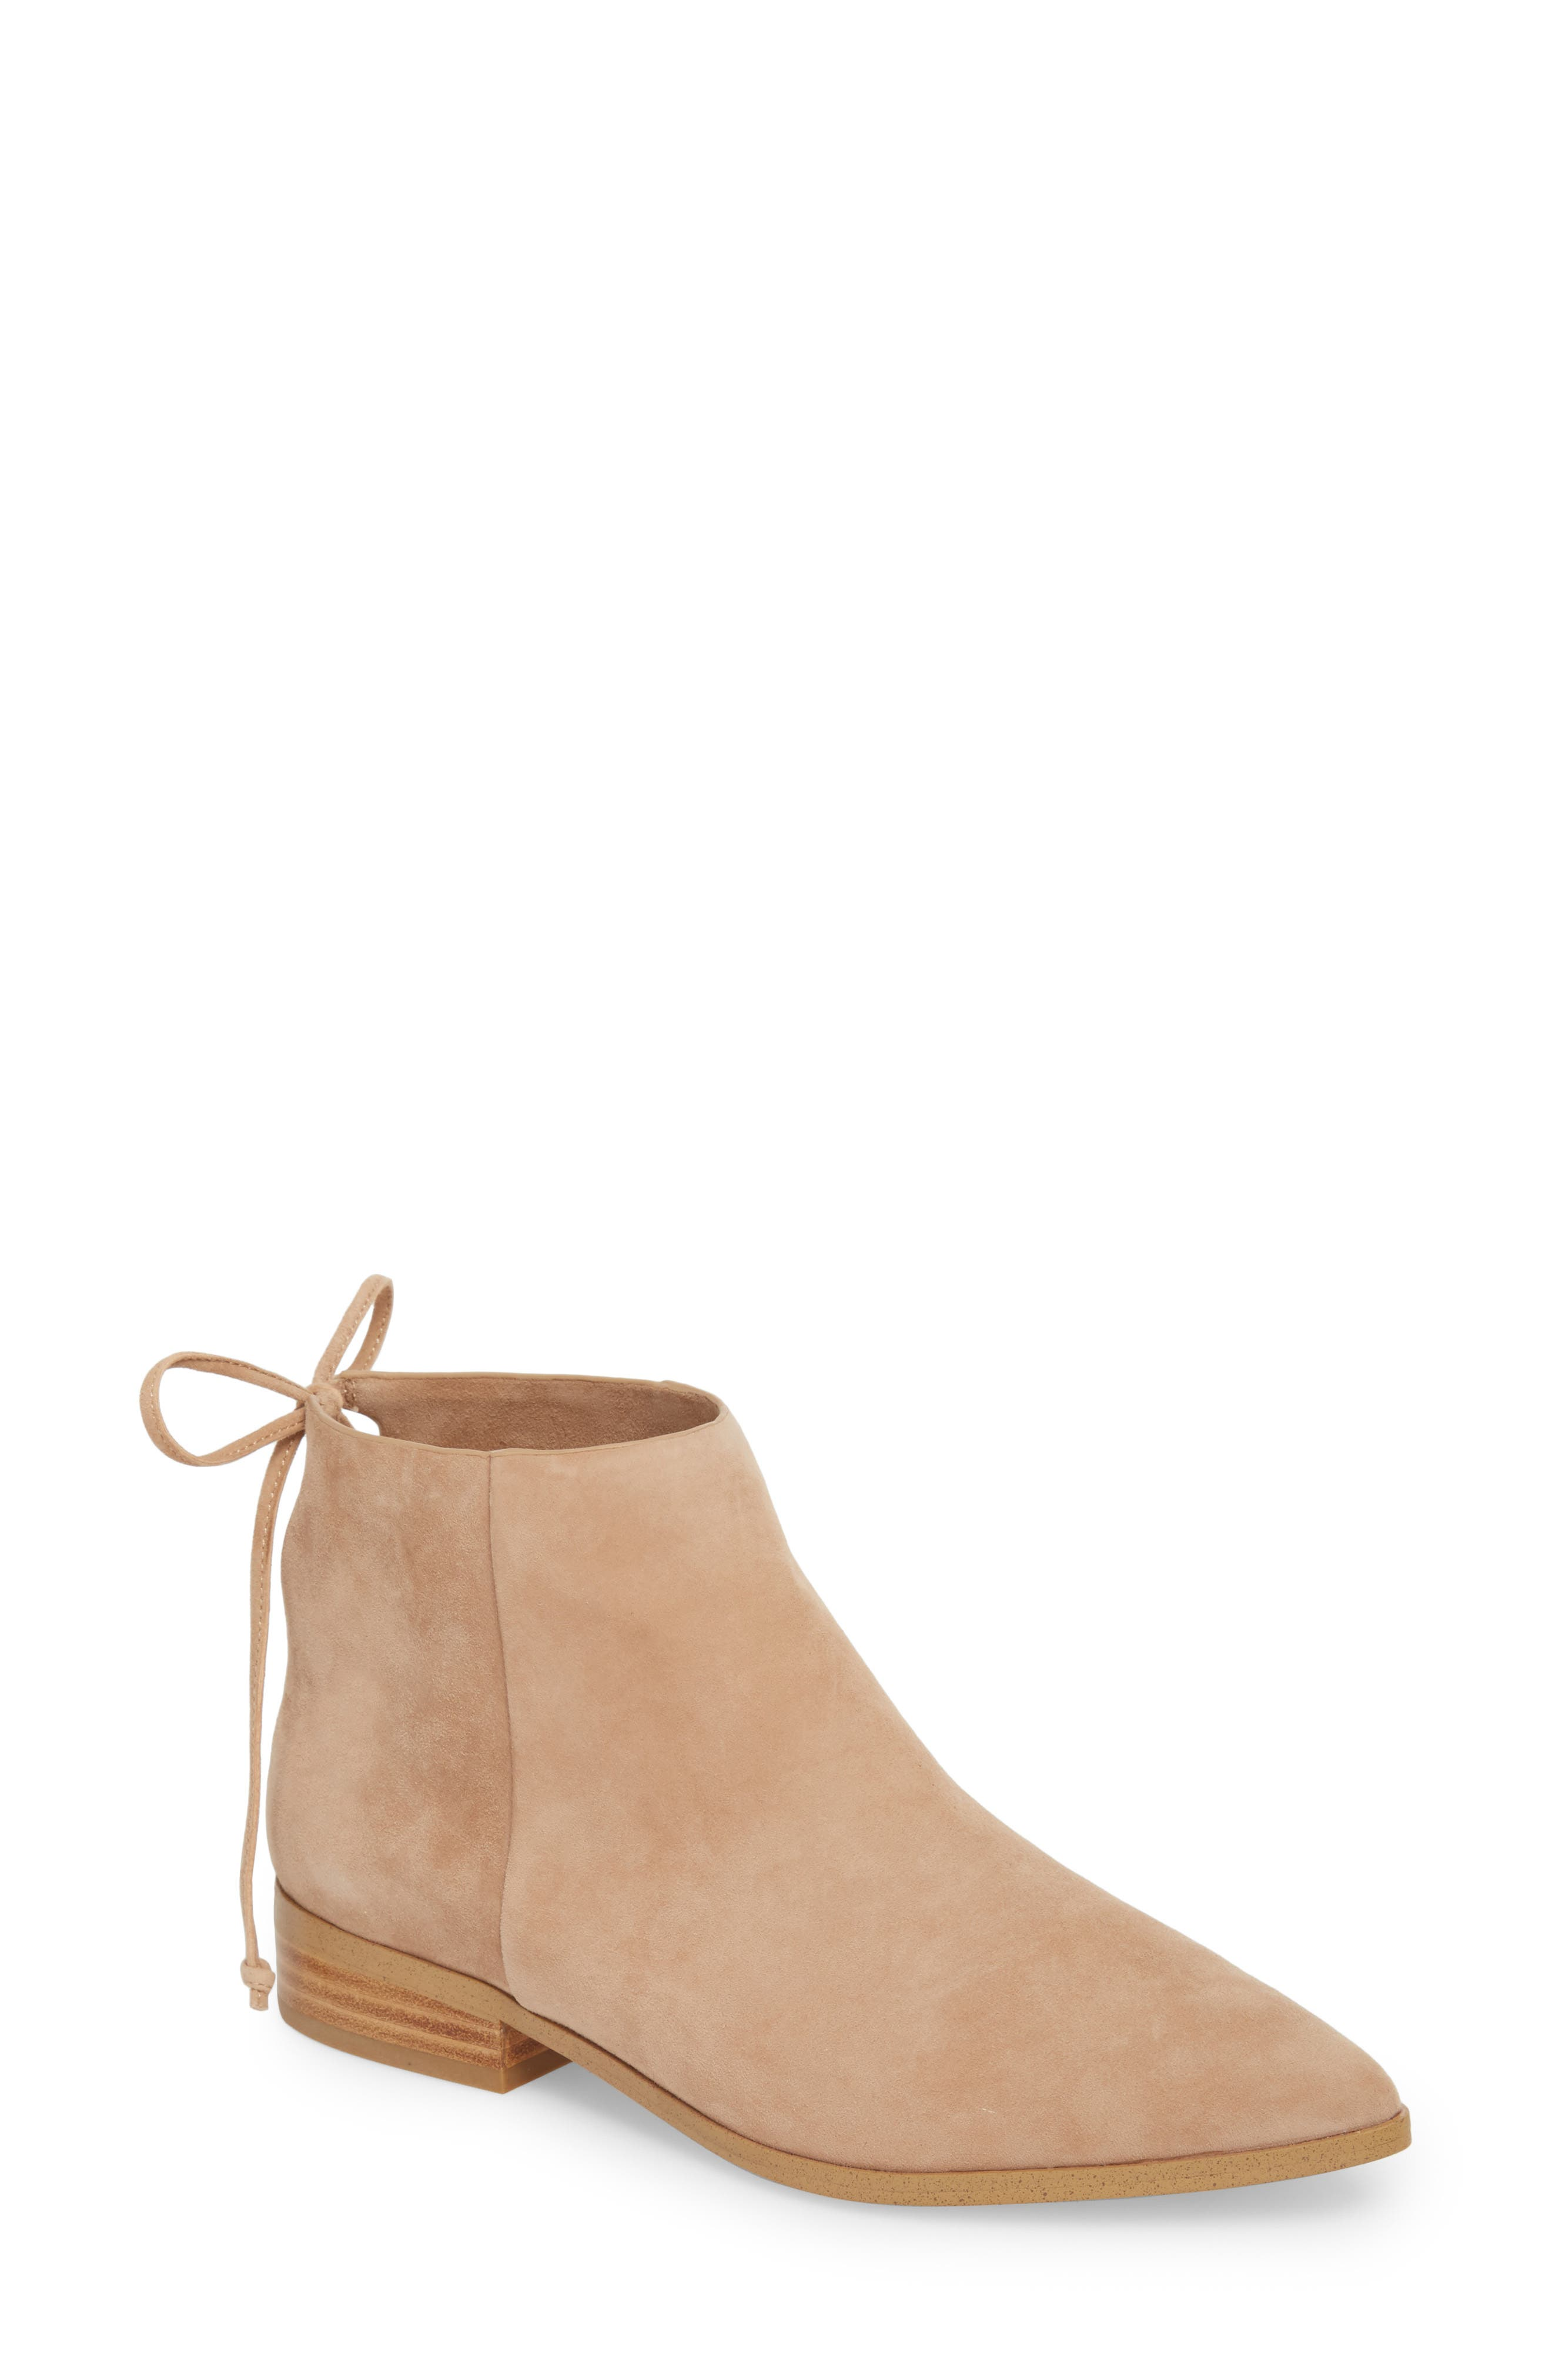 Niva Bootie,                         Main,                         color, Driftwood Suede